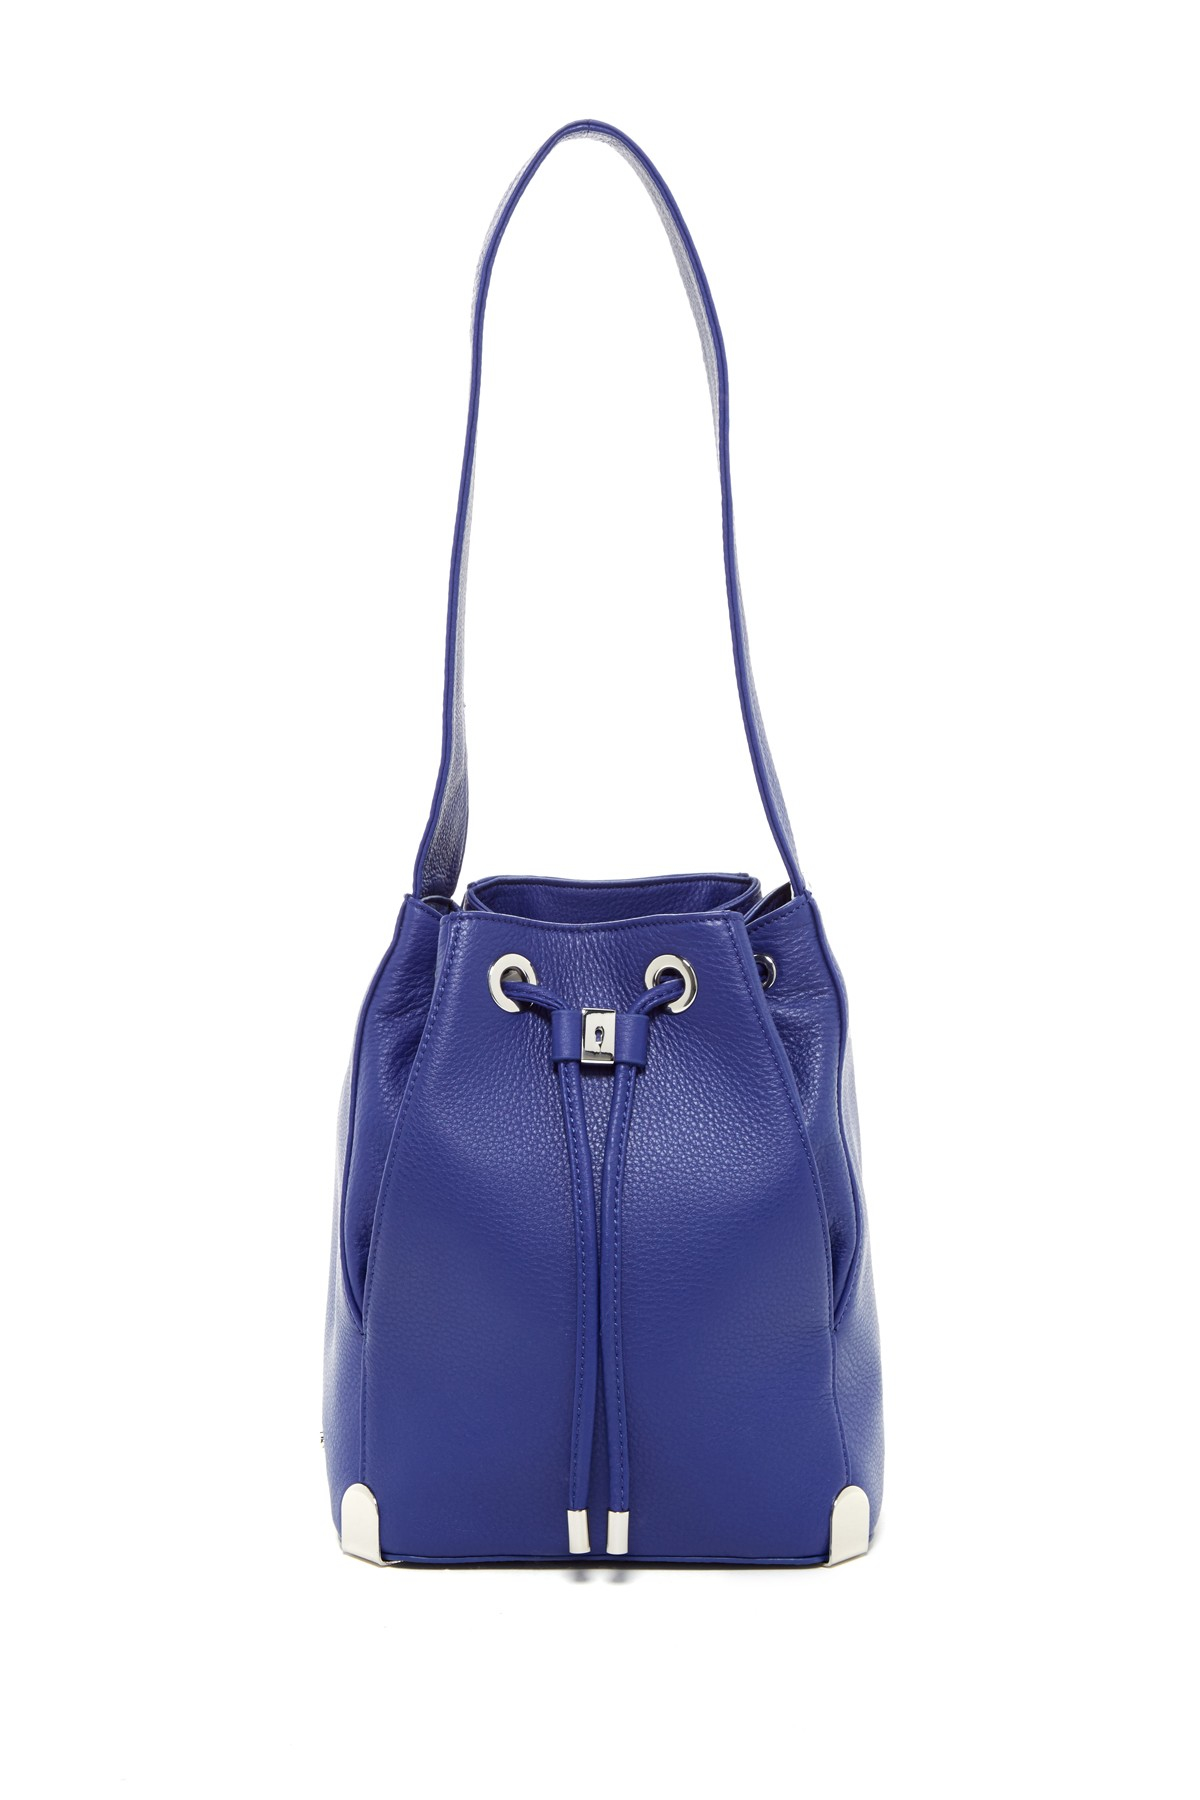 Vince camuto Janet Leather Drawstring Handbag in Blue